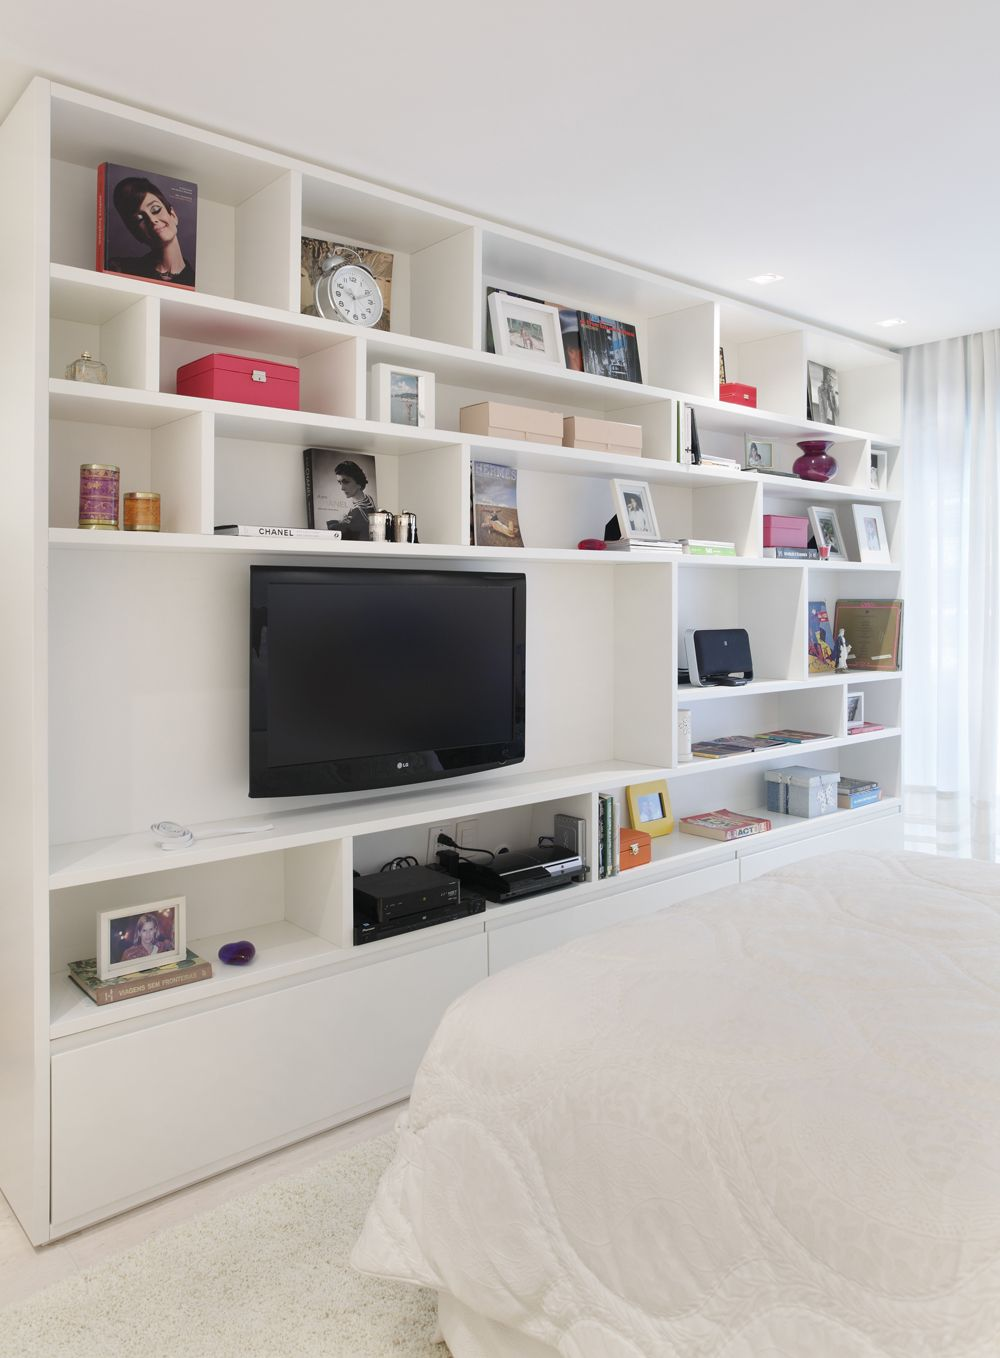 Clean na medida deco pinterest decora o de quarto for Deco quarto